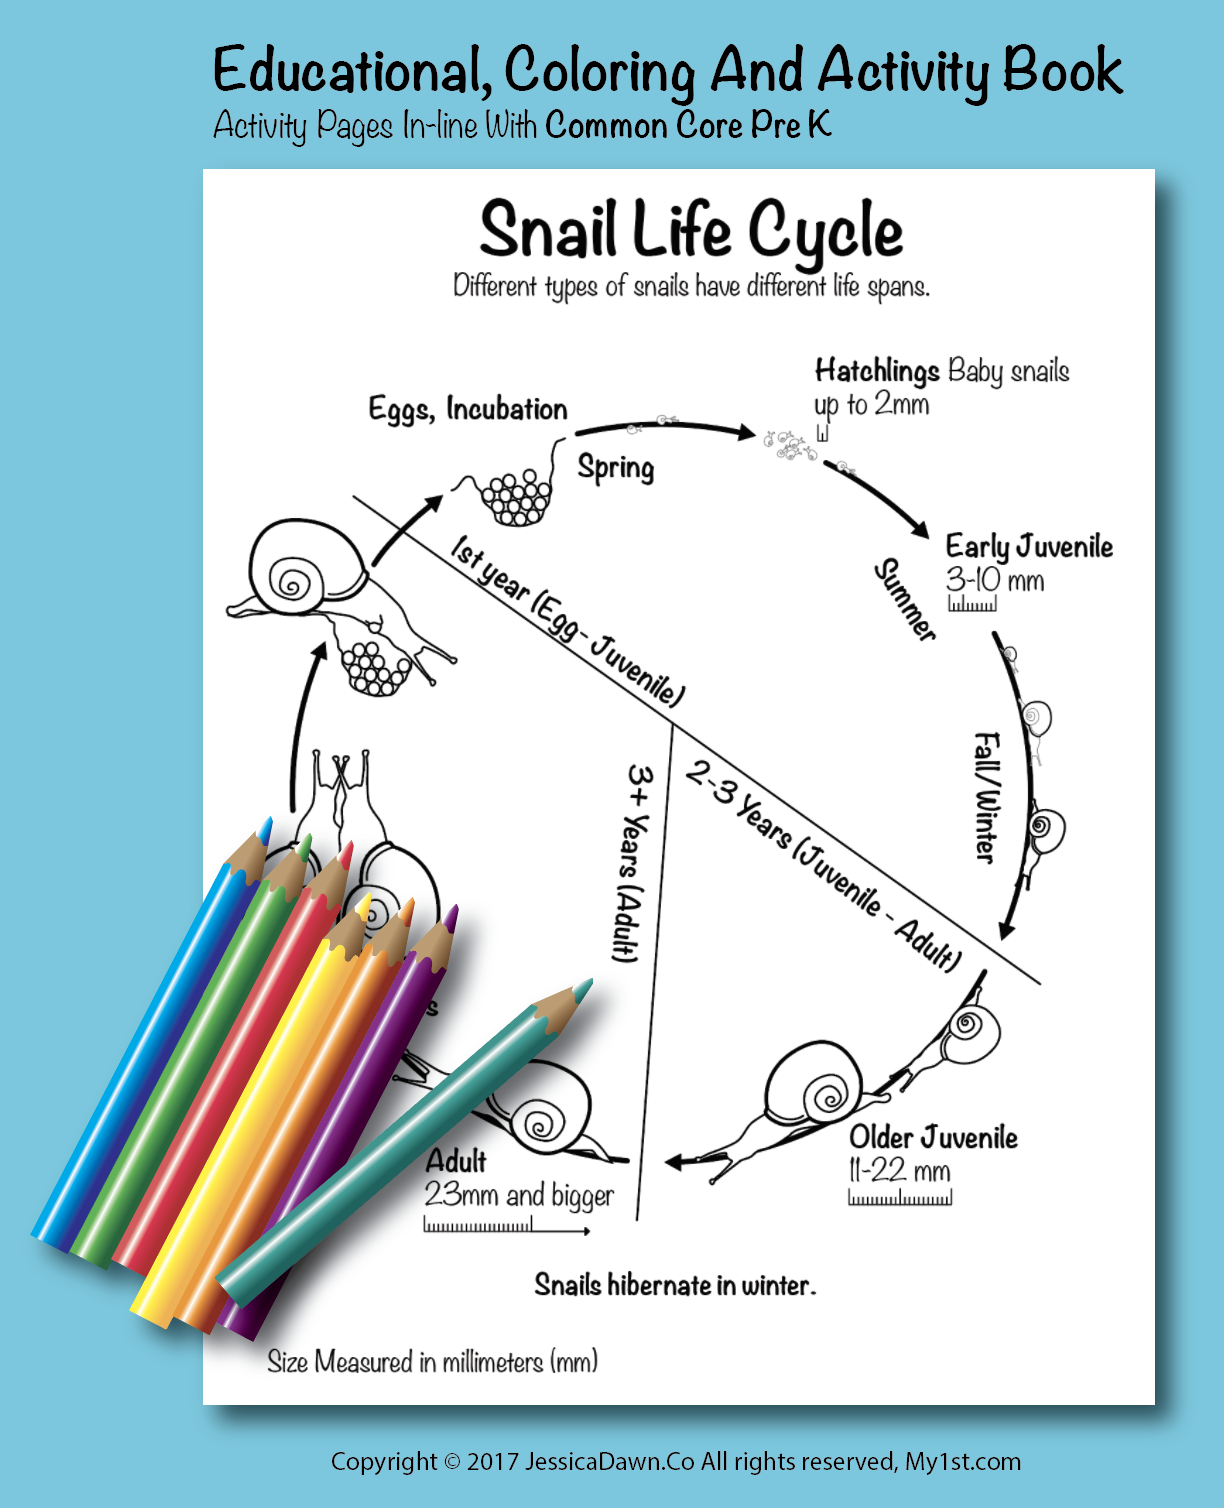 Snail Life Cycle My1st Coloring Page Fun And Educational